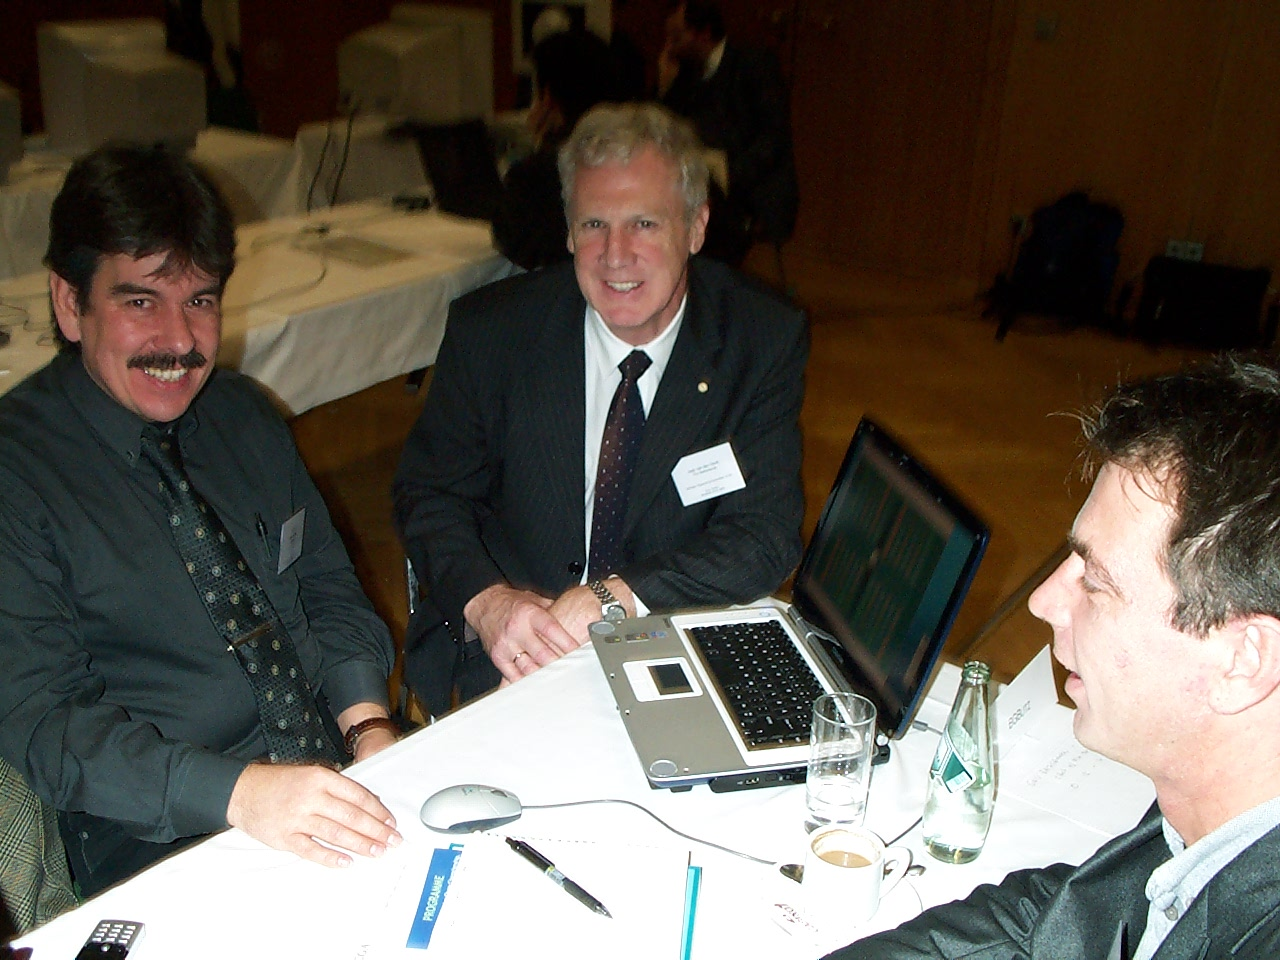 Achim, Frank and Prof. v.d. Herik